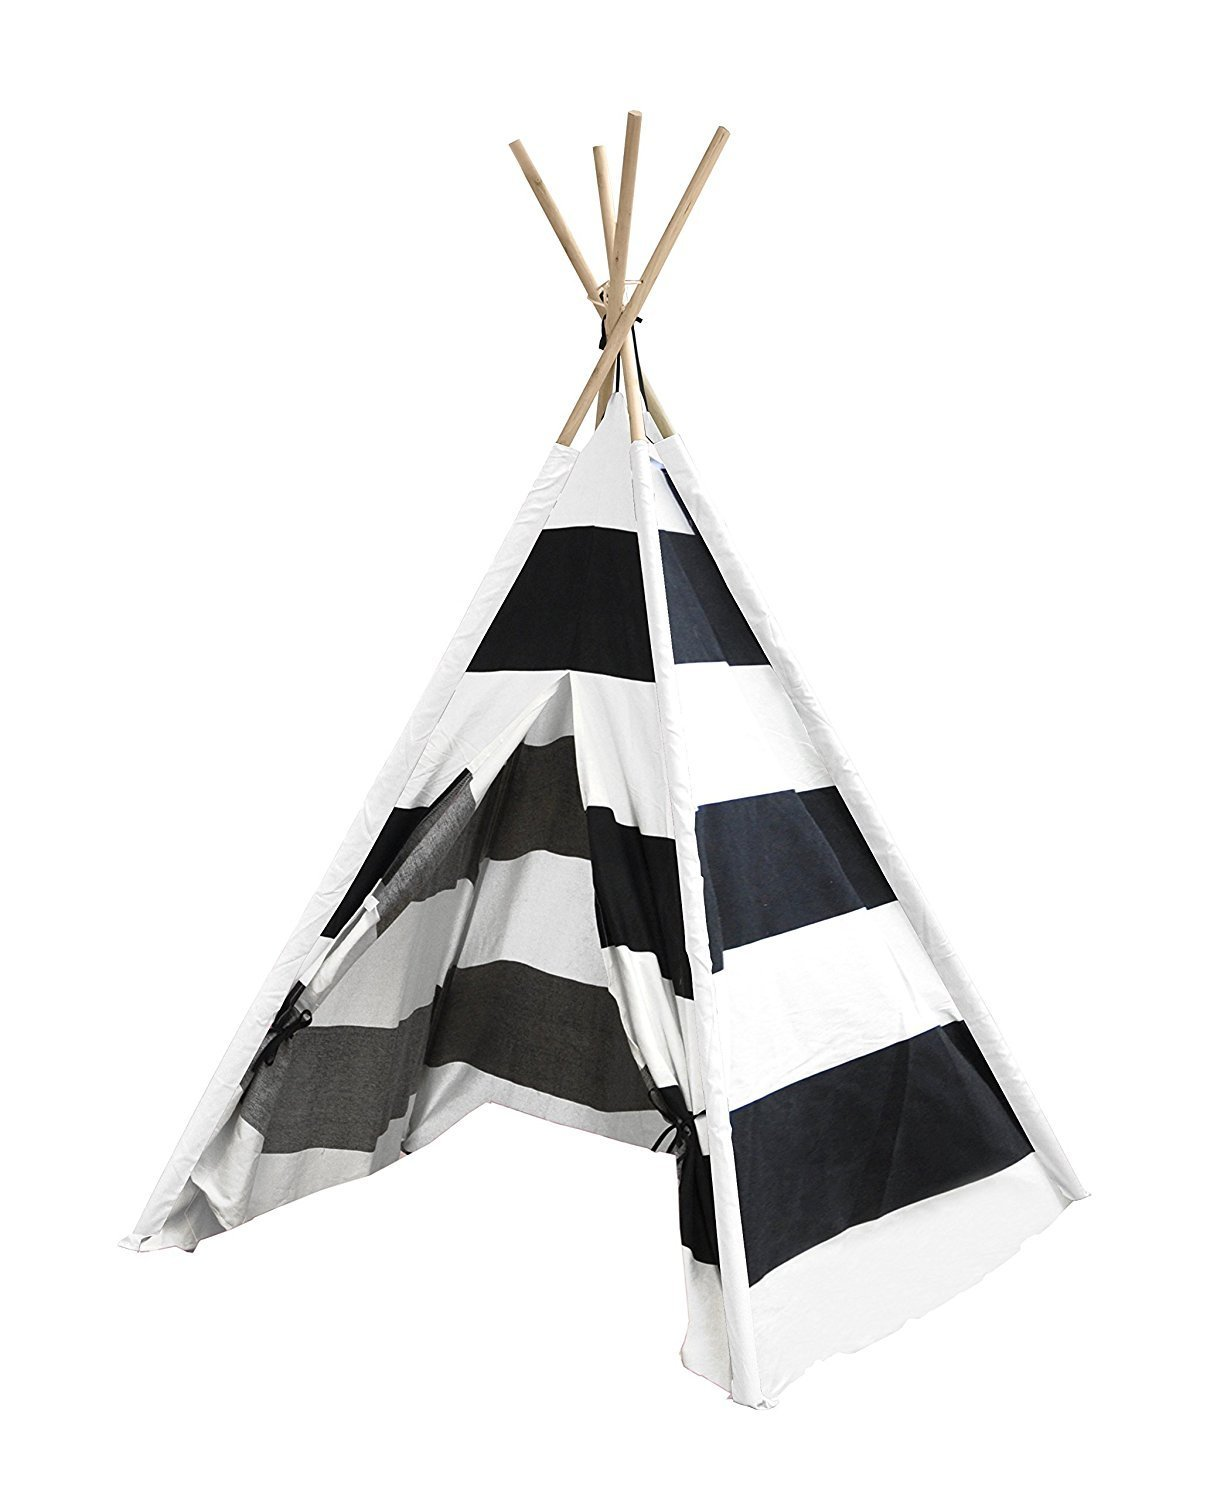 Porpora Indoor Indian Playhouse Toy Teepee Play Tent for Kids Toddlers Canvas with Carry Case, Black Stripe BlackThickStripeTeepeeP